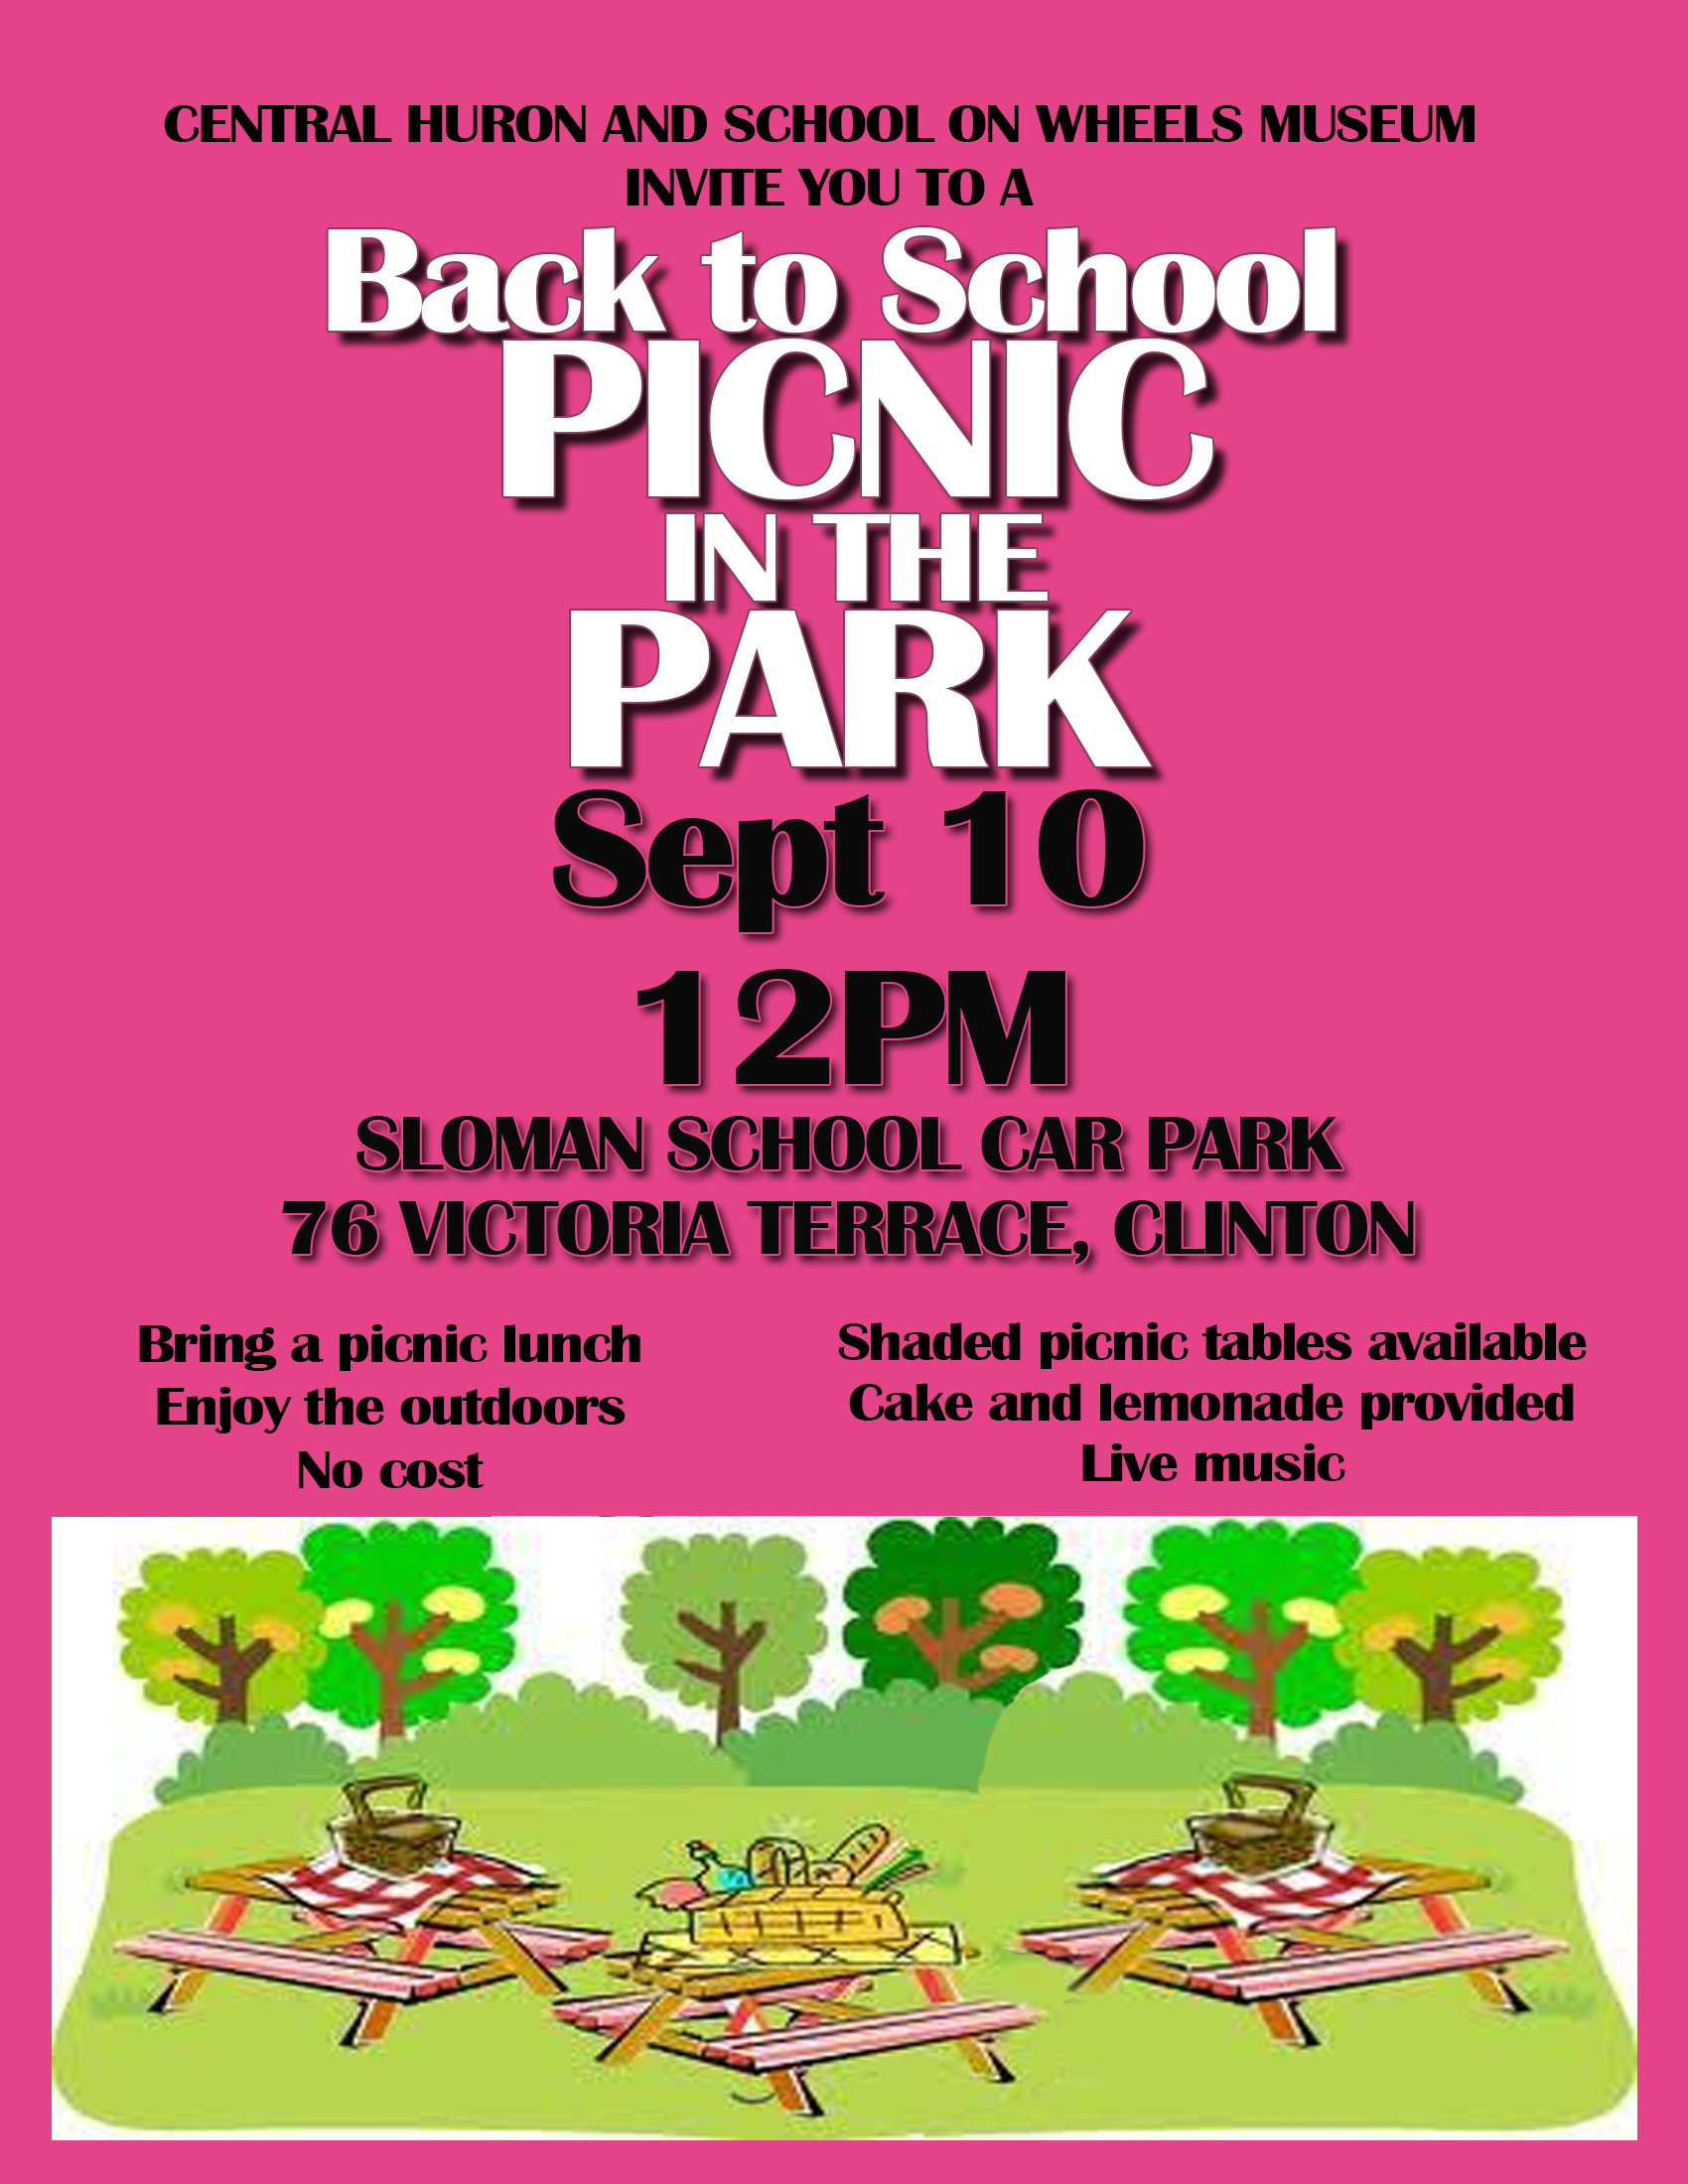 picnic in the park sept 10.jpg